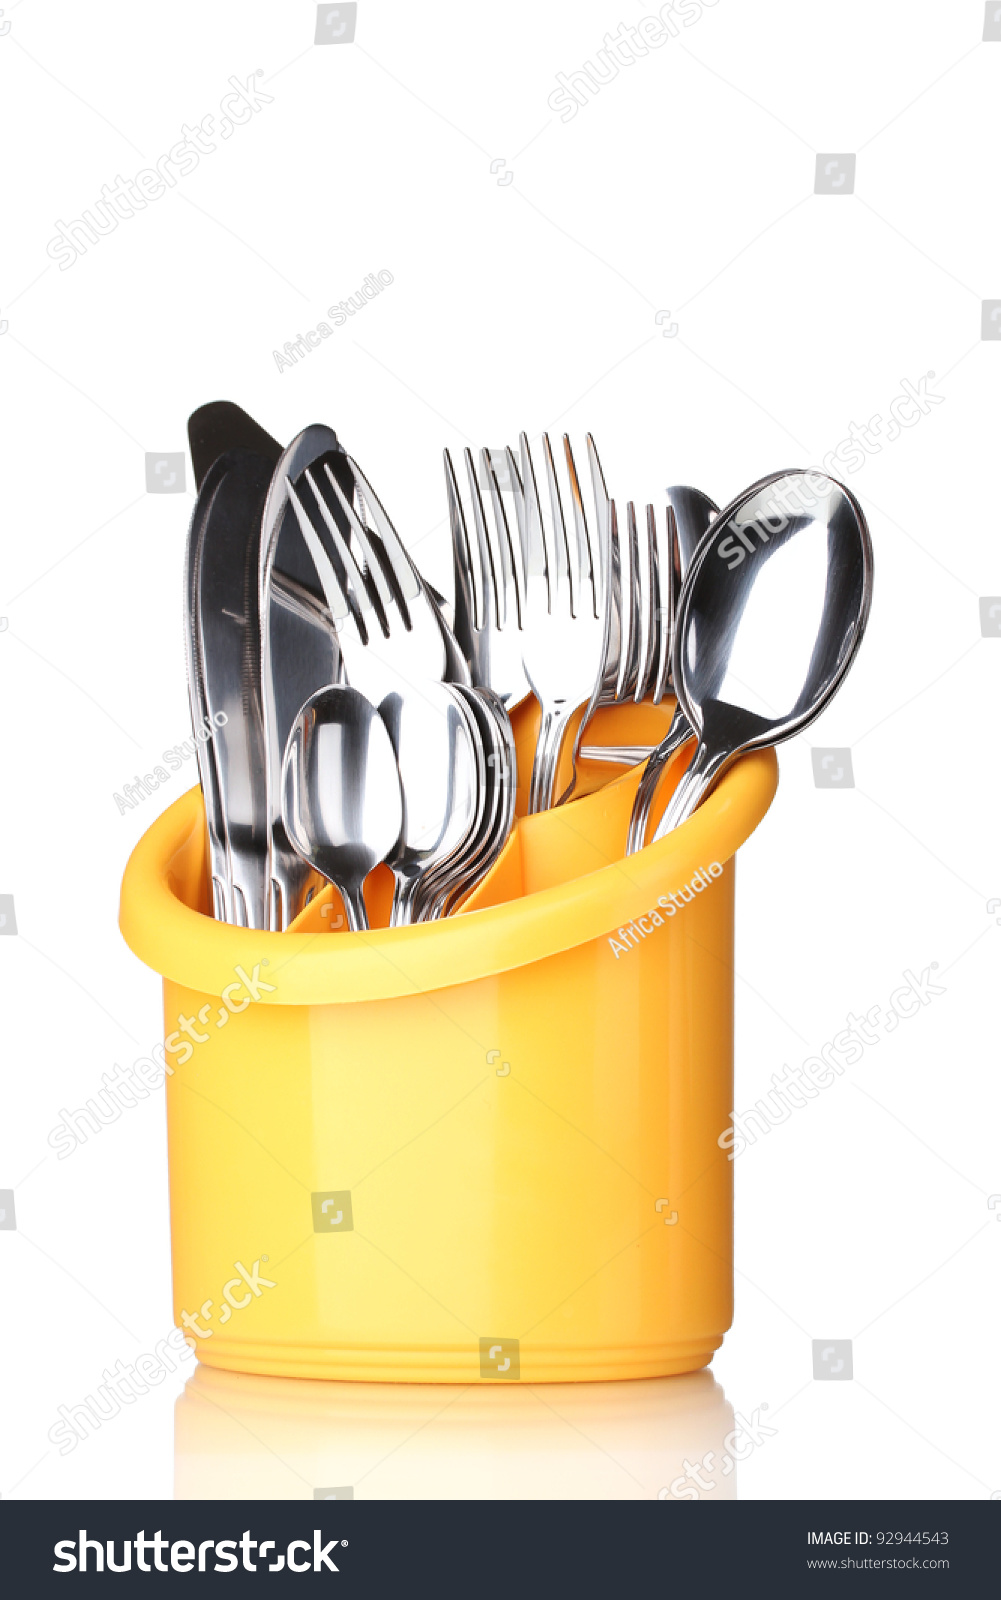 kitchen cutlery knives forks and spoons in yellow stand 25 best ideas about fish knife on pinterest knife and